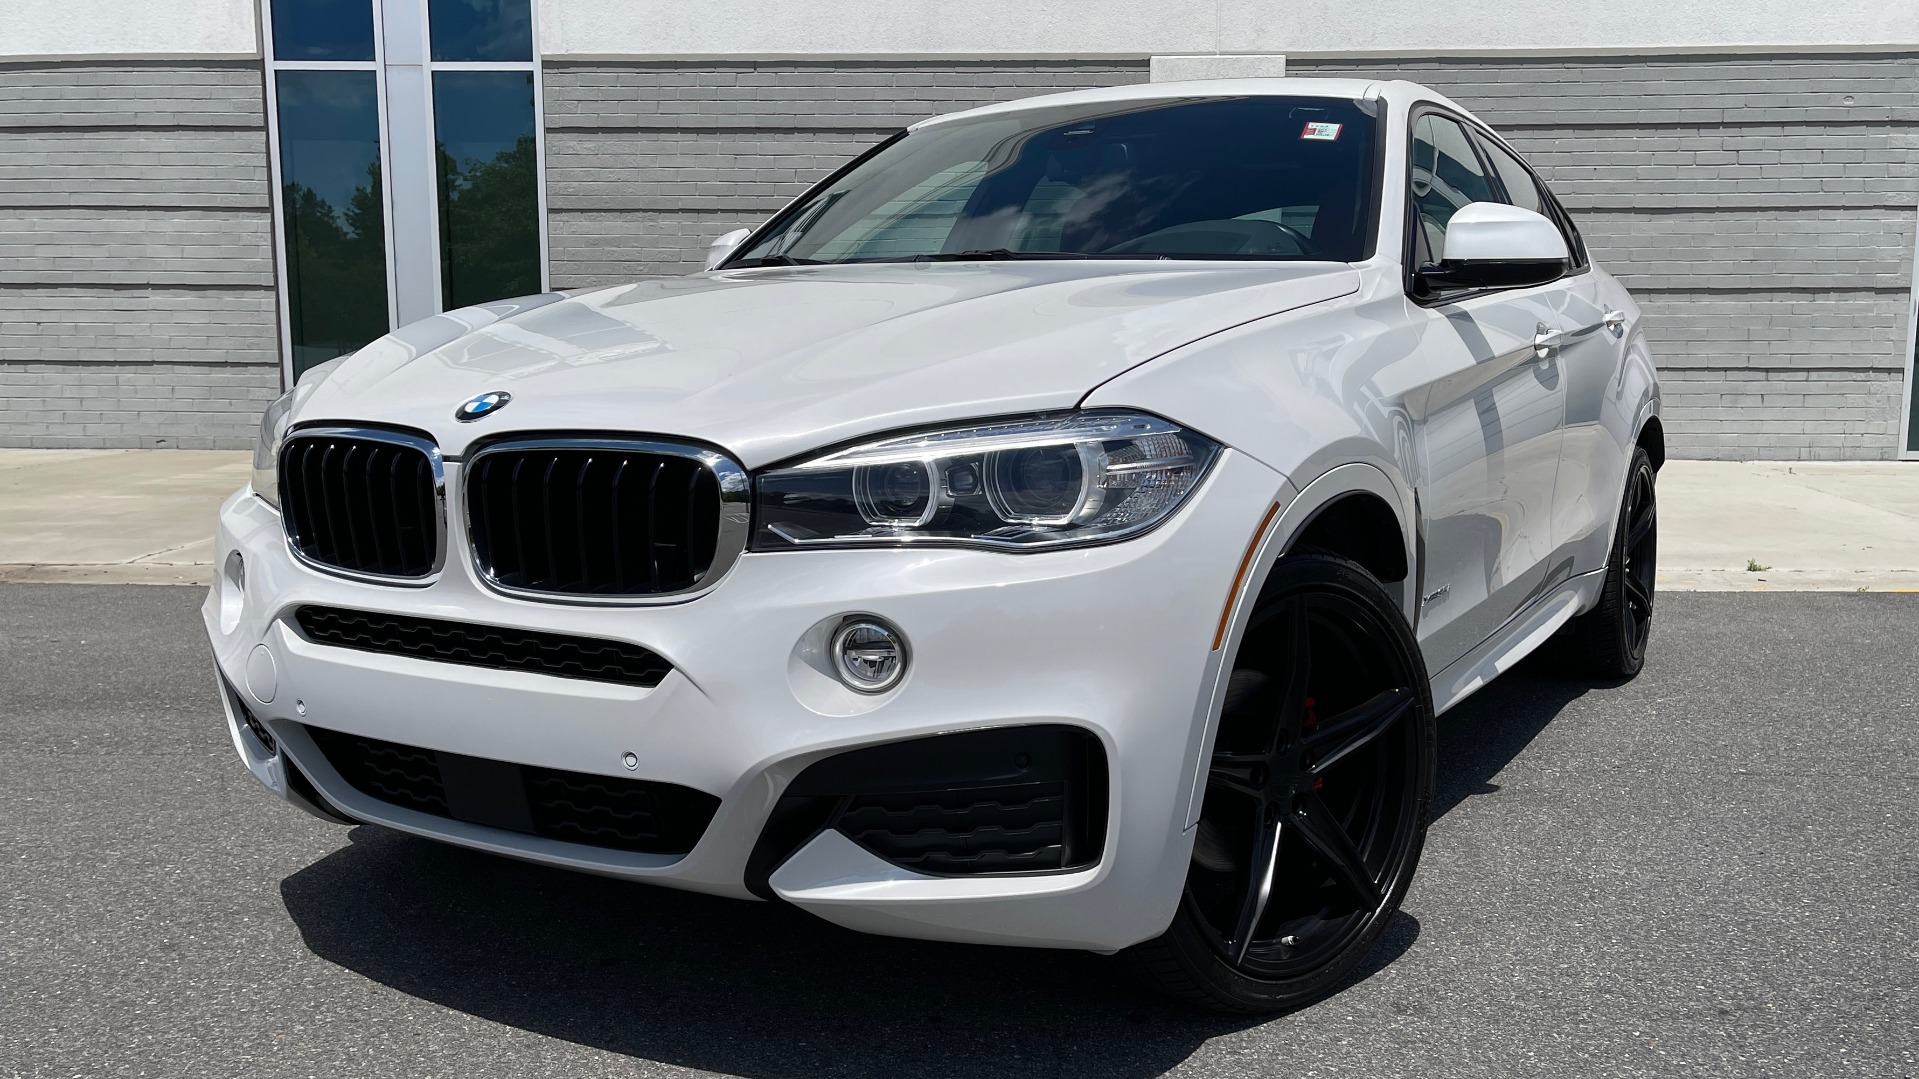 Used 2018 BMW X6 XDRIVE35I M-SPORT / NAV / DRVR ASST PLUS / ADAPT M-SUSP / REARVIEW for sale Sold at Formula Imports in Charlotte NC 28227 6